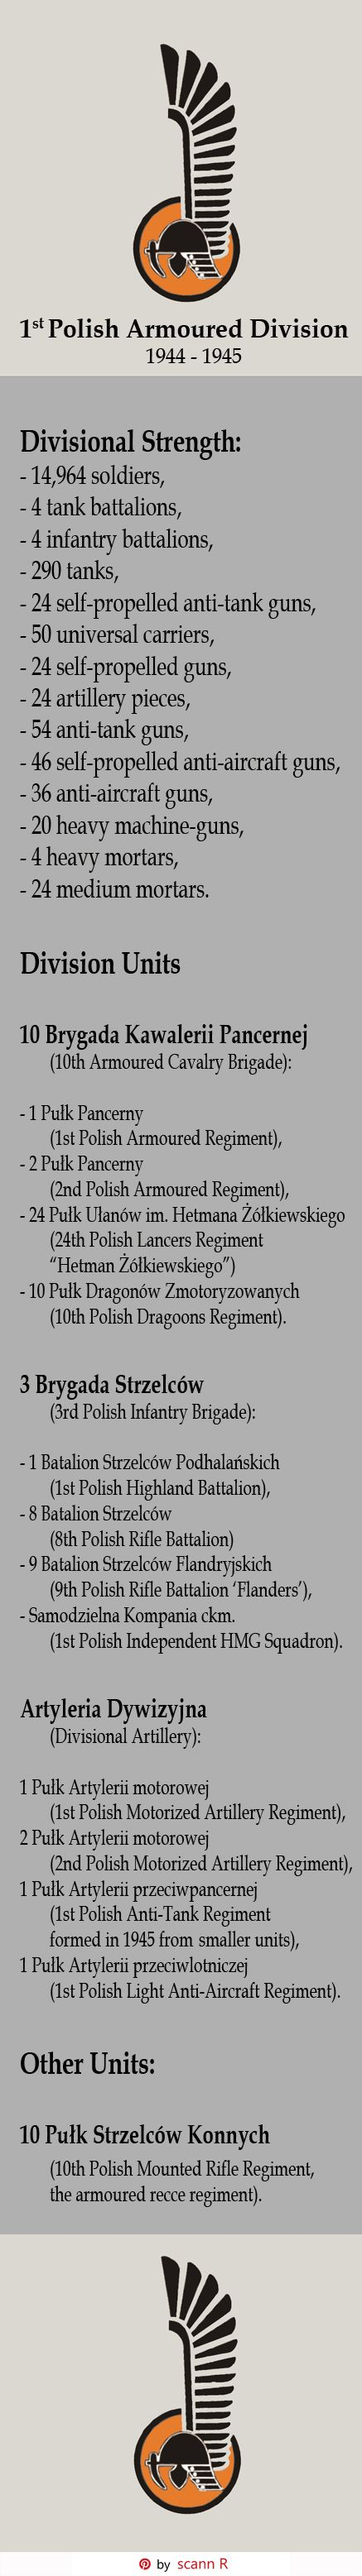 1st Polish Armoured Division - Divisional Strength 1944 1945